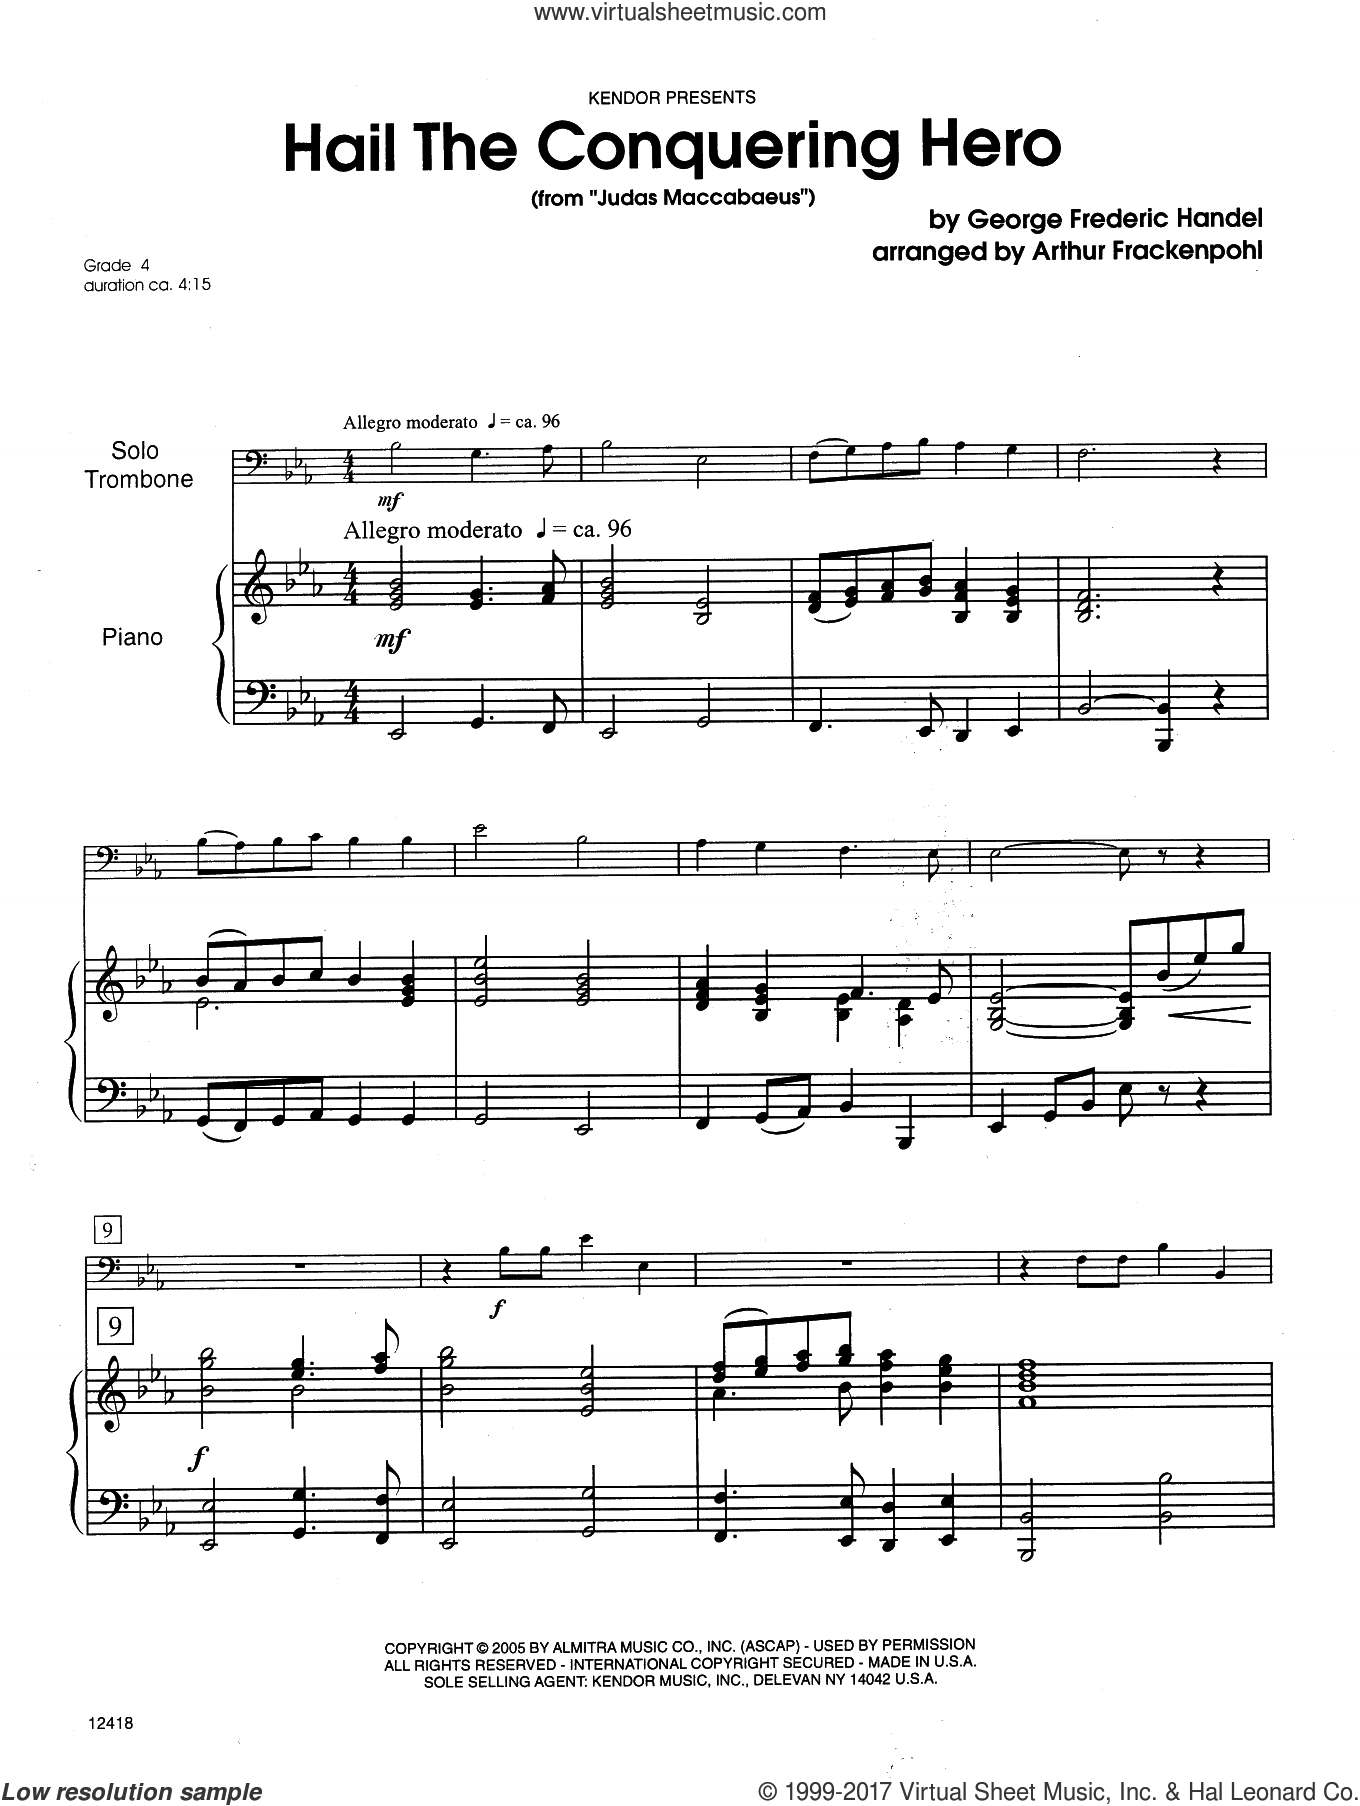 Hail The Conquering Hero (complete set of parts) sheet music for trombone and piano by George Frideric Handel and Steve Frackenpohl, intermediate skill level